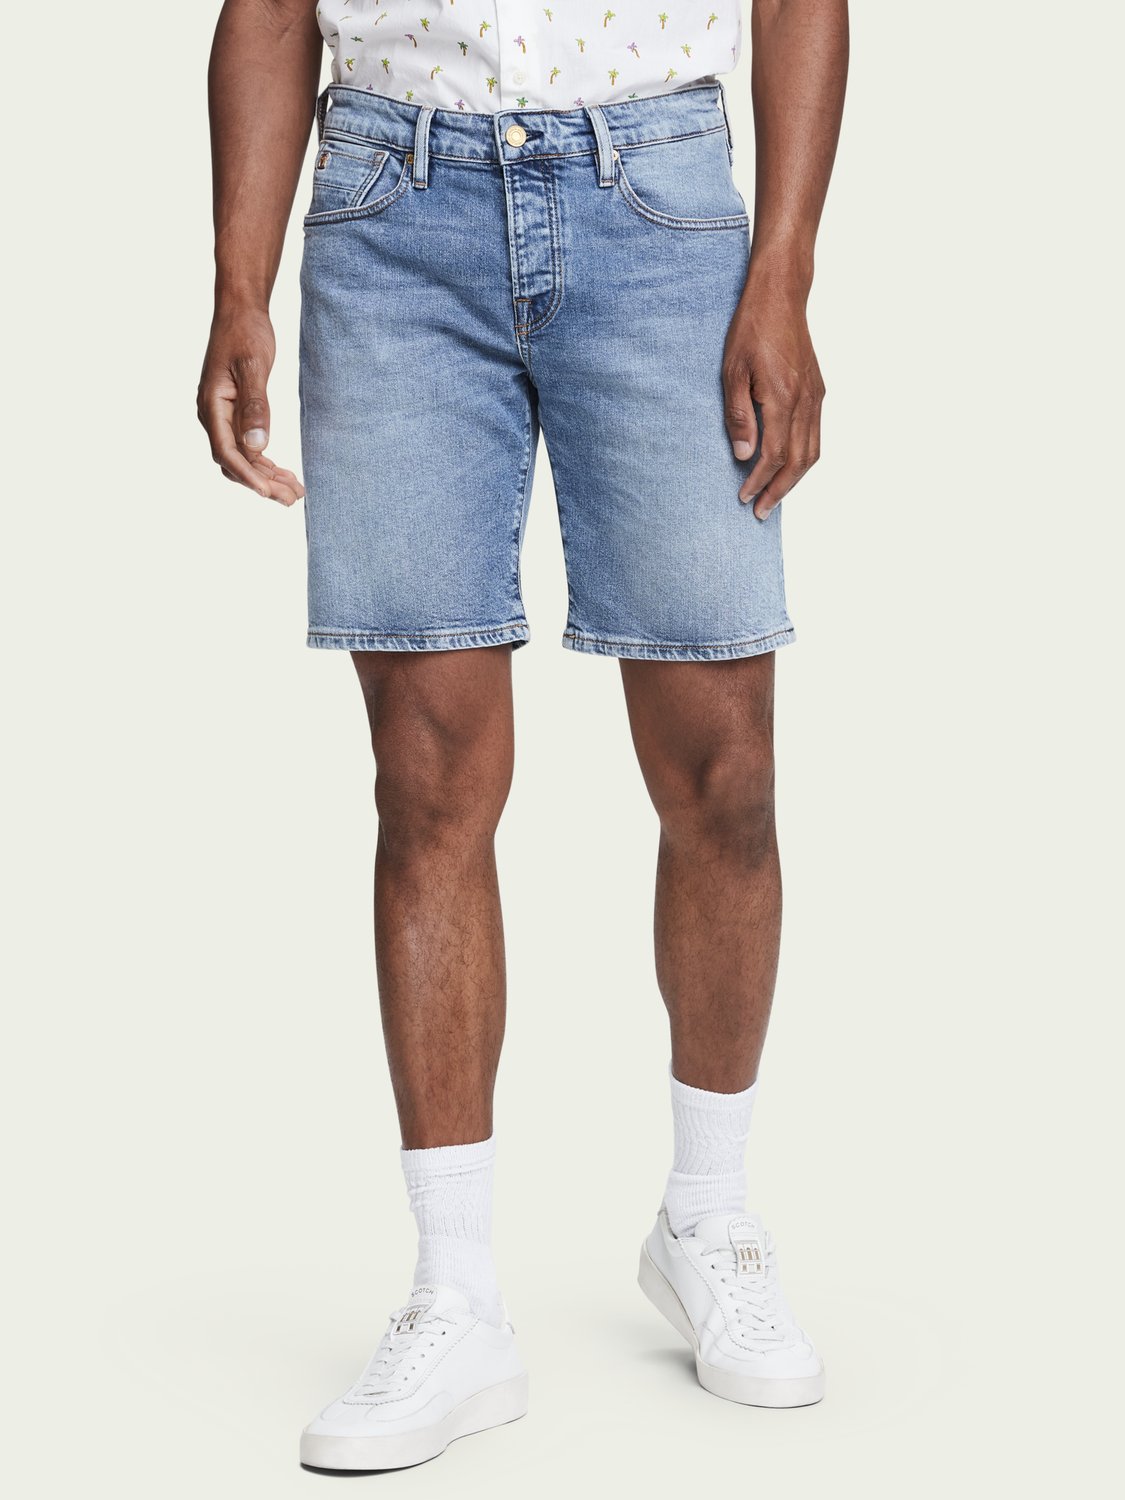 Men Ralston Short - Midday Blauw | Slim fit